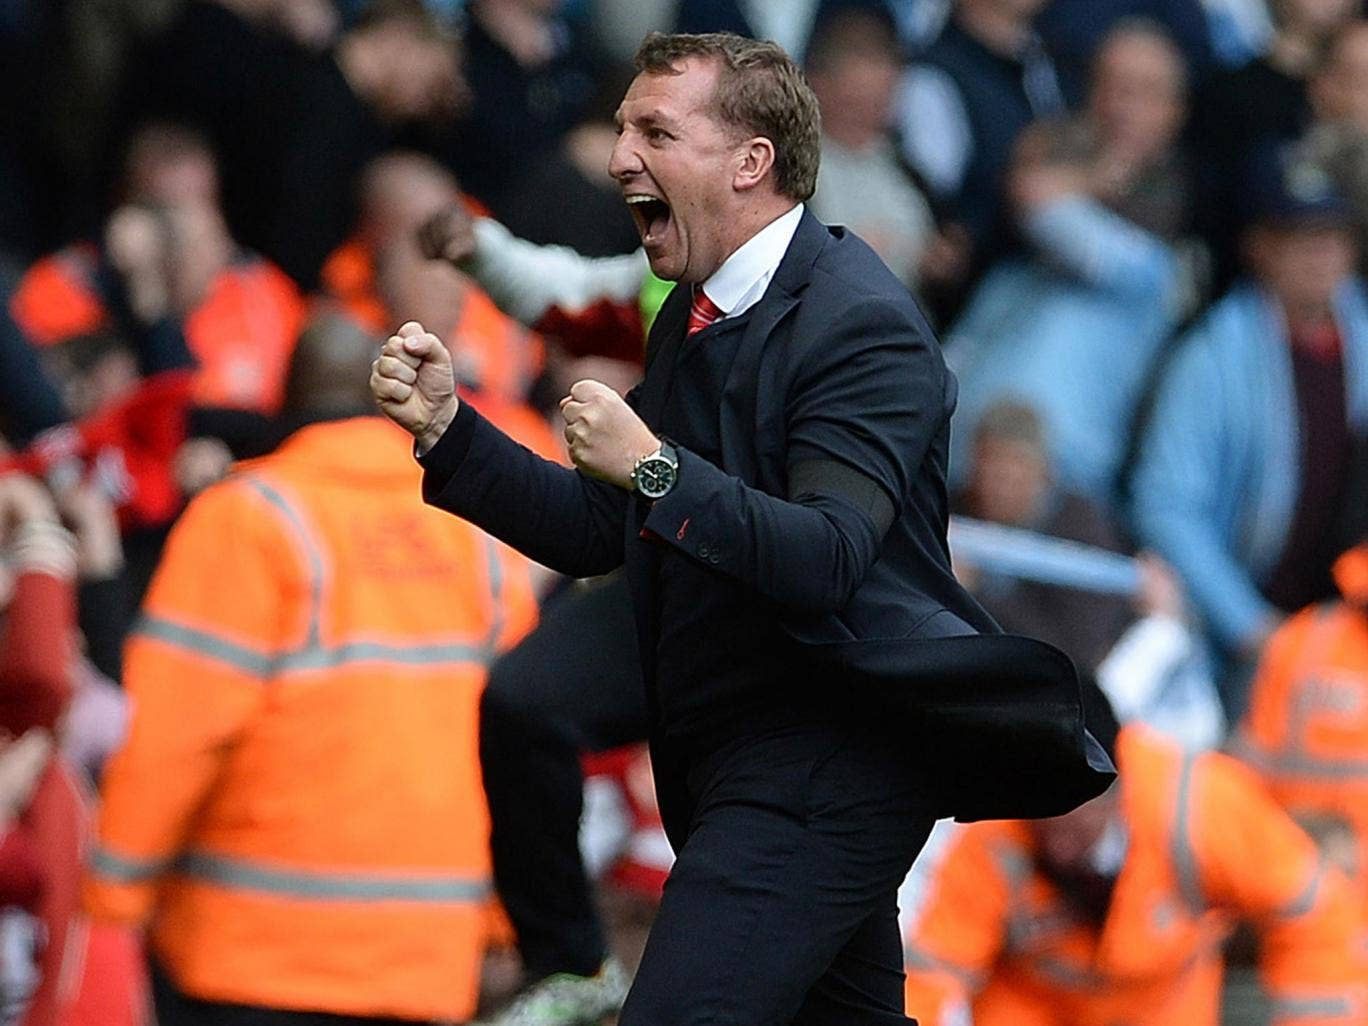 Brendan Rodgers celebrates the 3-2 victory over Manchester City that keeps his Liverpool side top of the Premier League